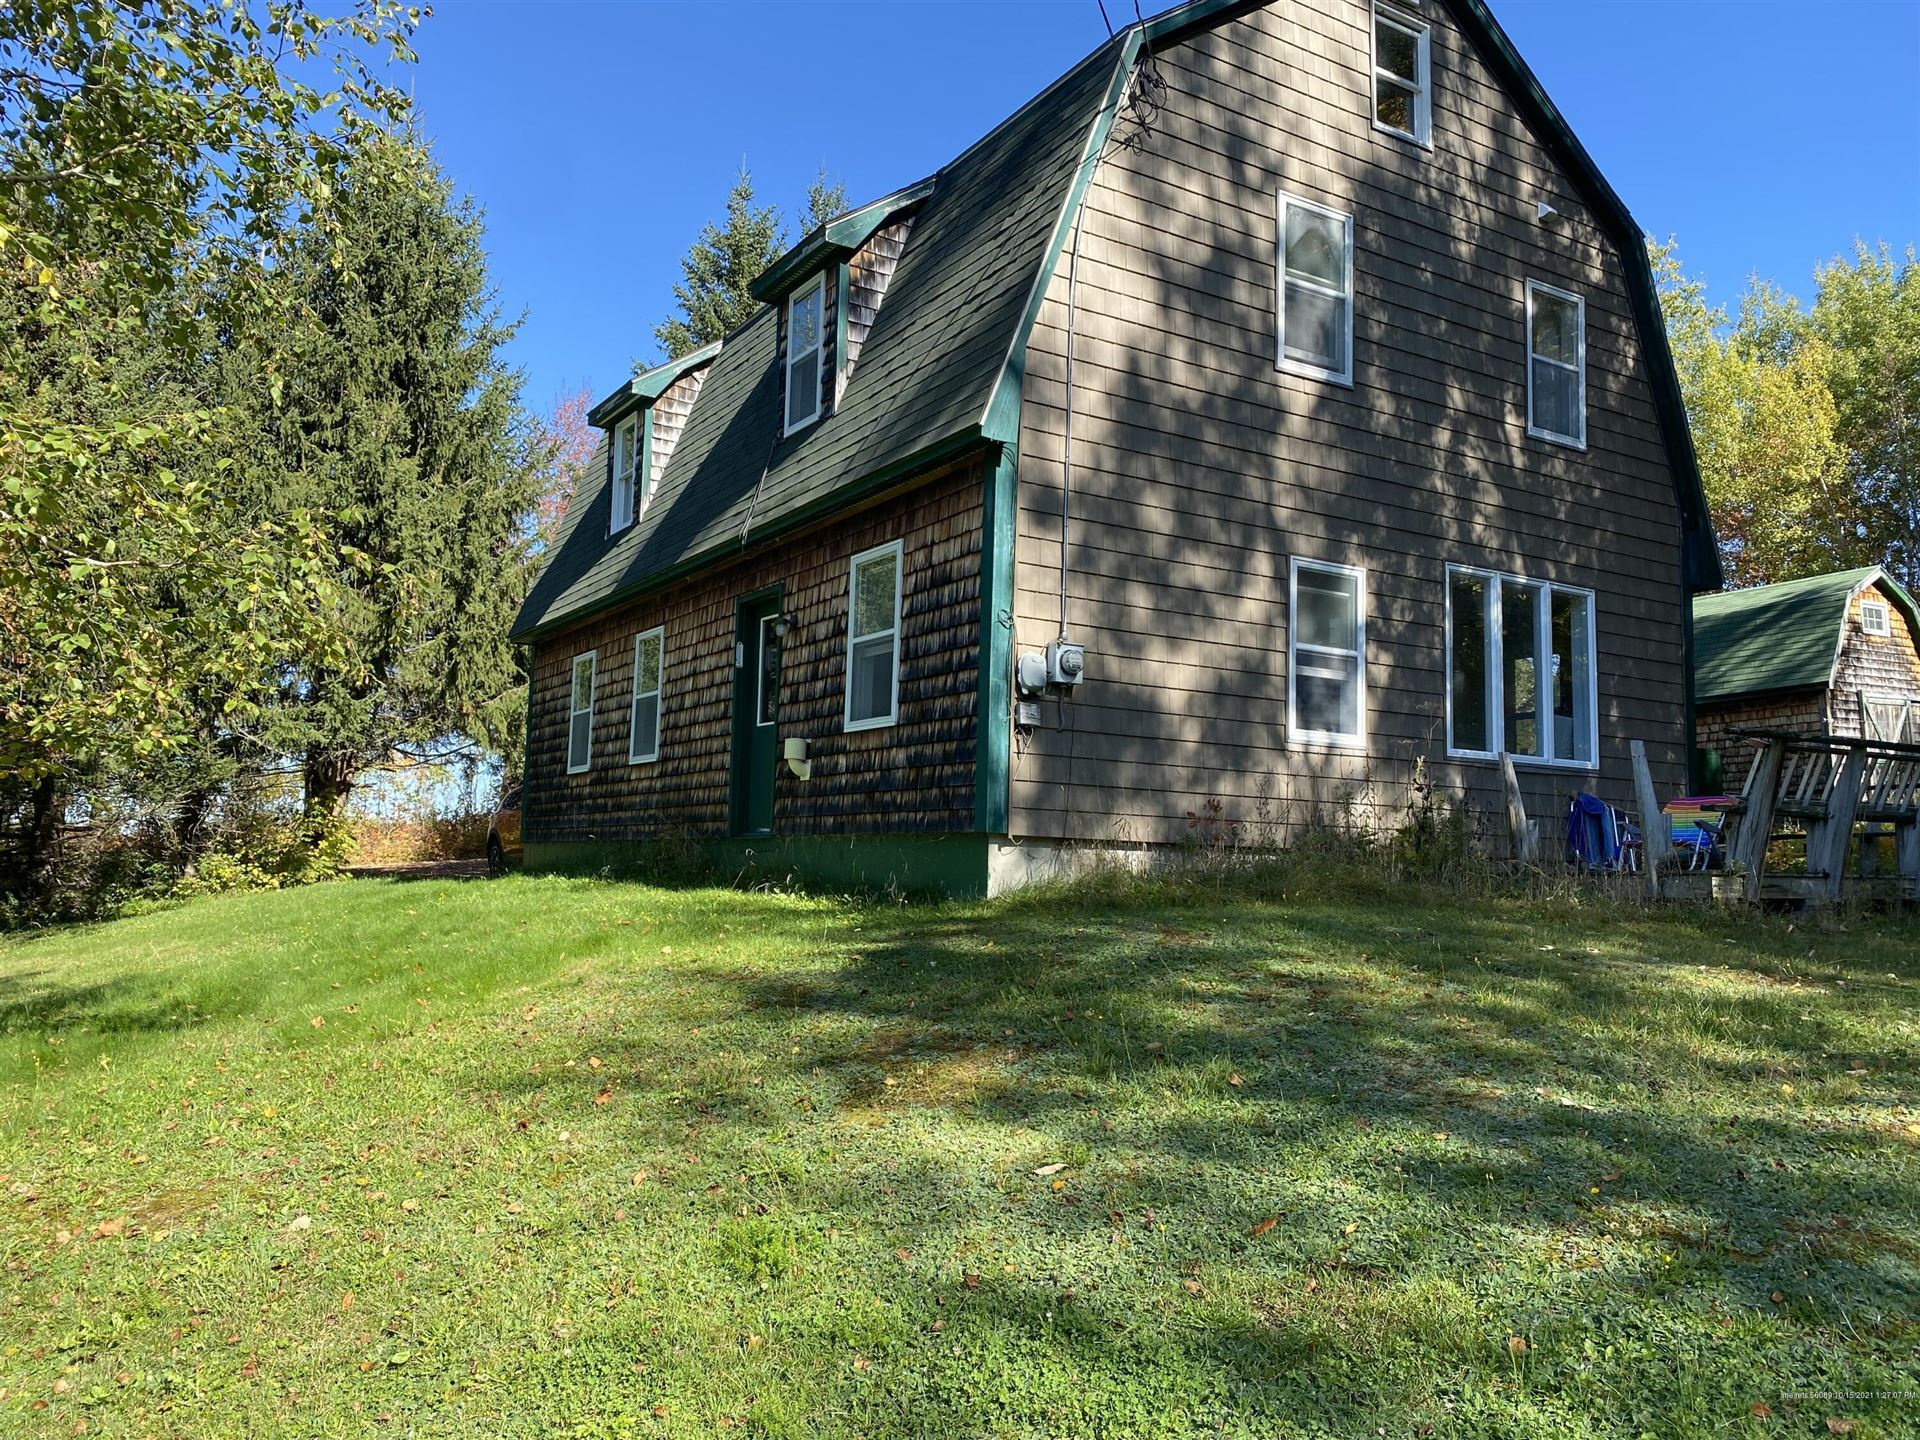 Photo of 19 Holden Heights, Ashland, ME 04732 (MLS # 1511639)